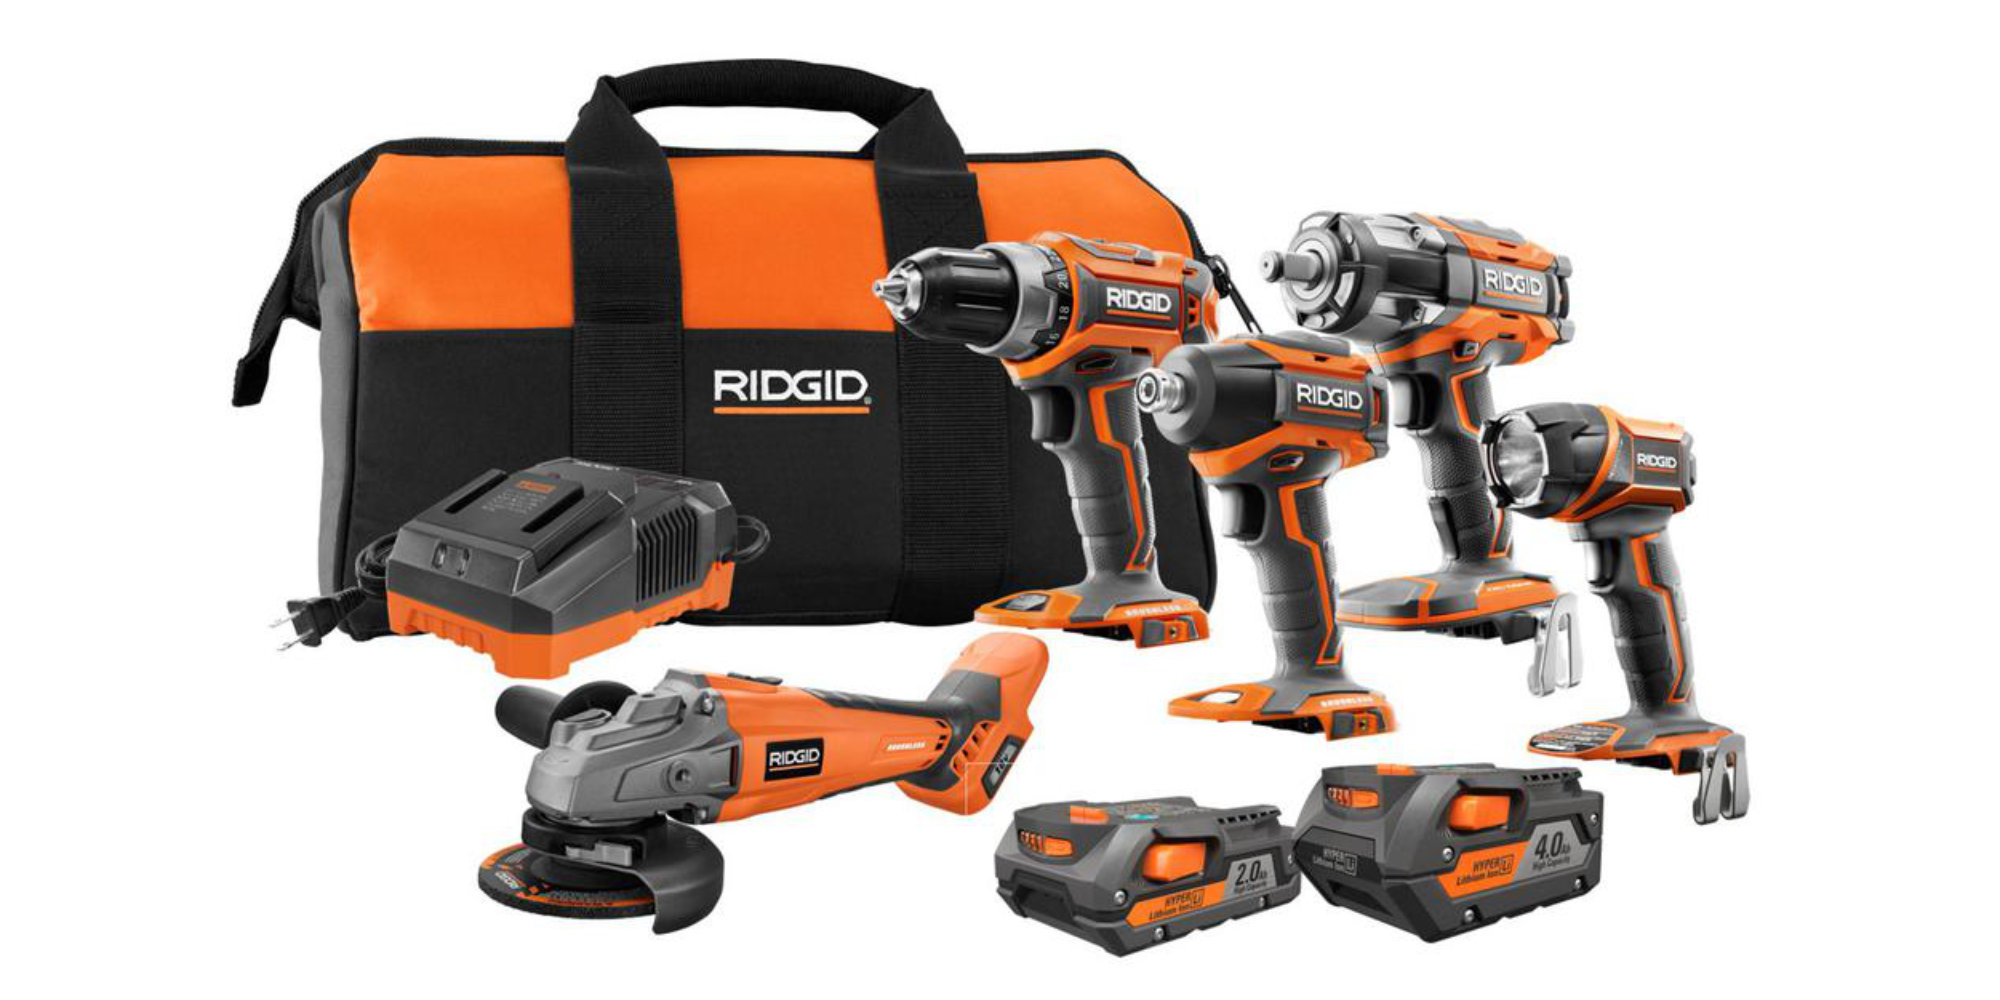 Nail down this RIDGID 18V 5-Tool Combo at its lowest price yet: $249 (25% off, today only)